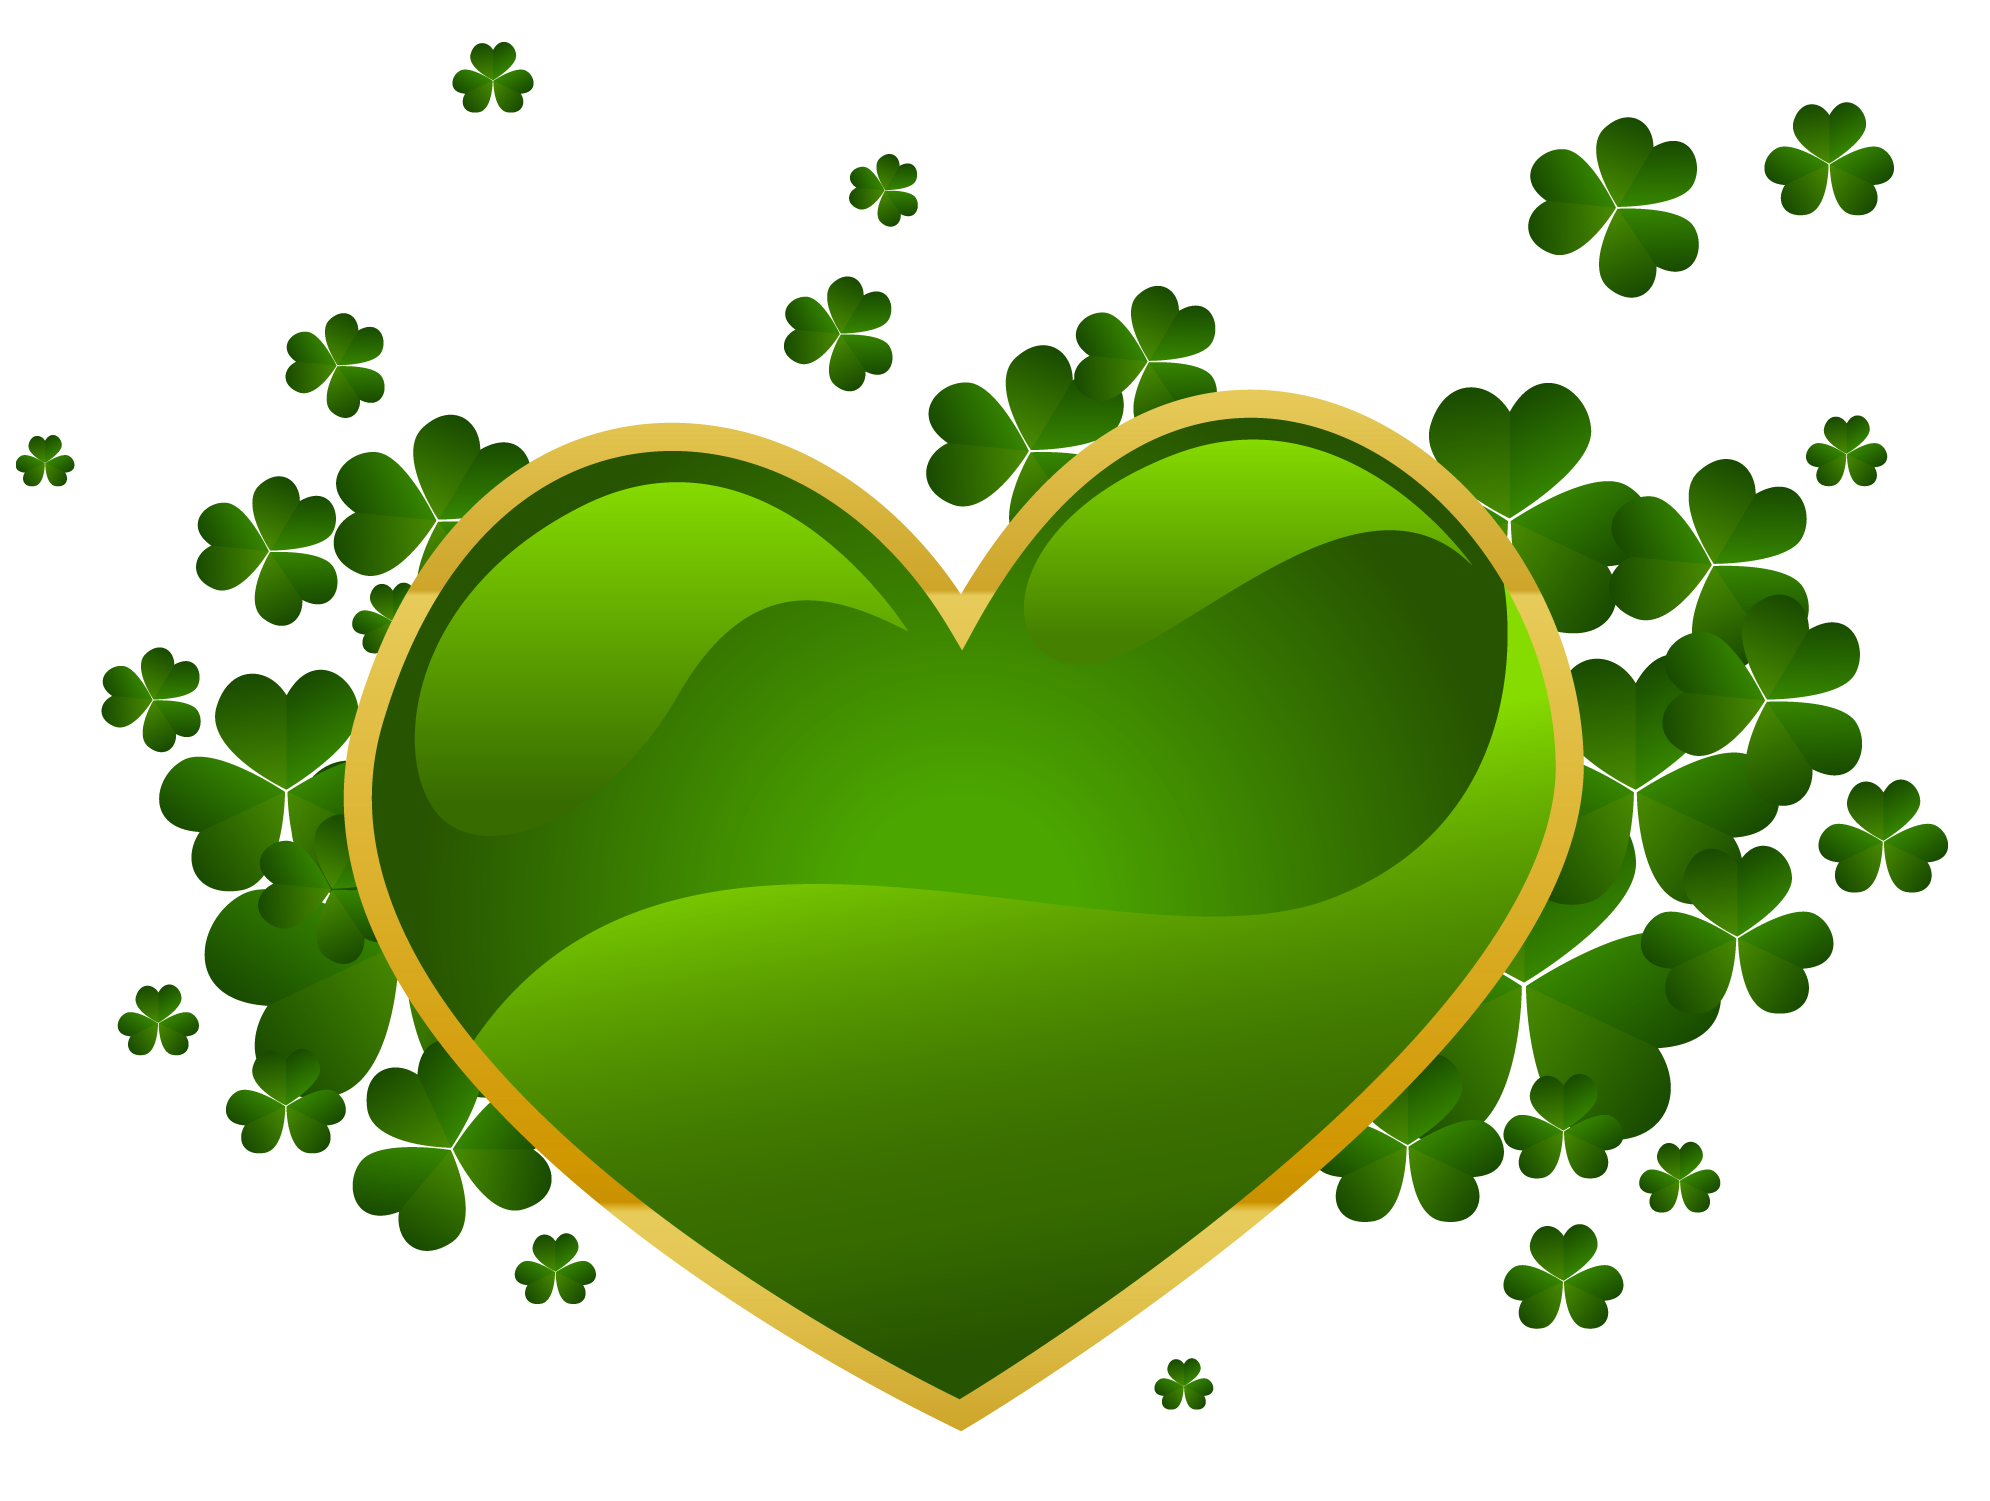 HAPPY SAINT PATRICK'S DAY BANNER, Wallpapers, Pics | Old houses ...